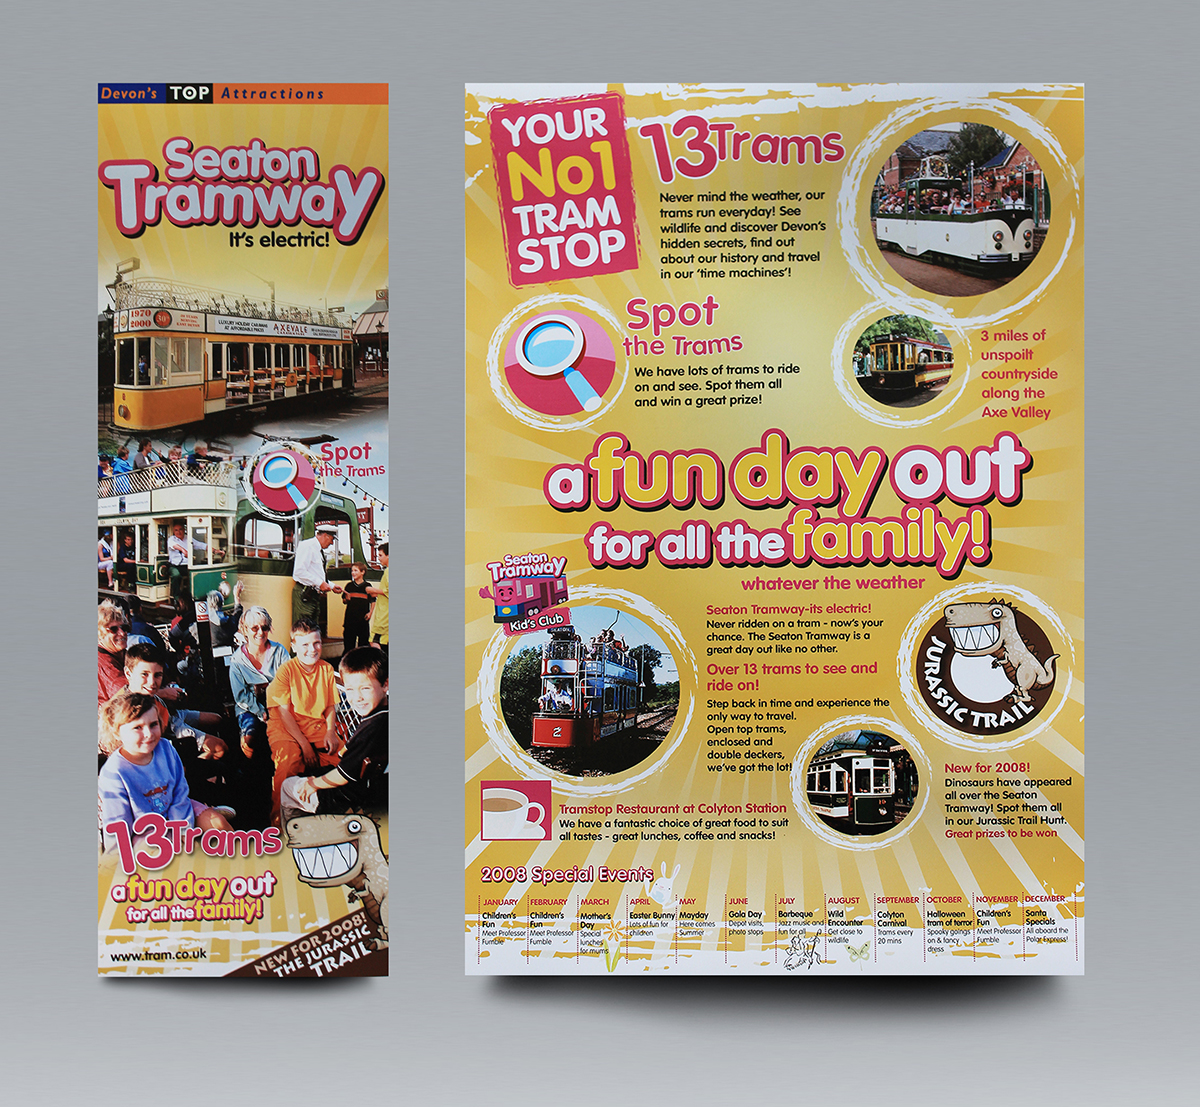 Tourist attraction leaflet for Seaton Tramway